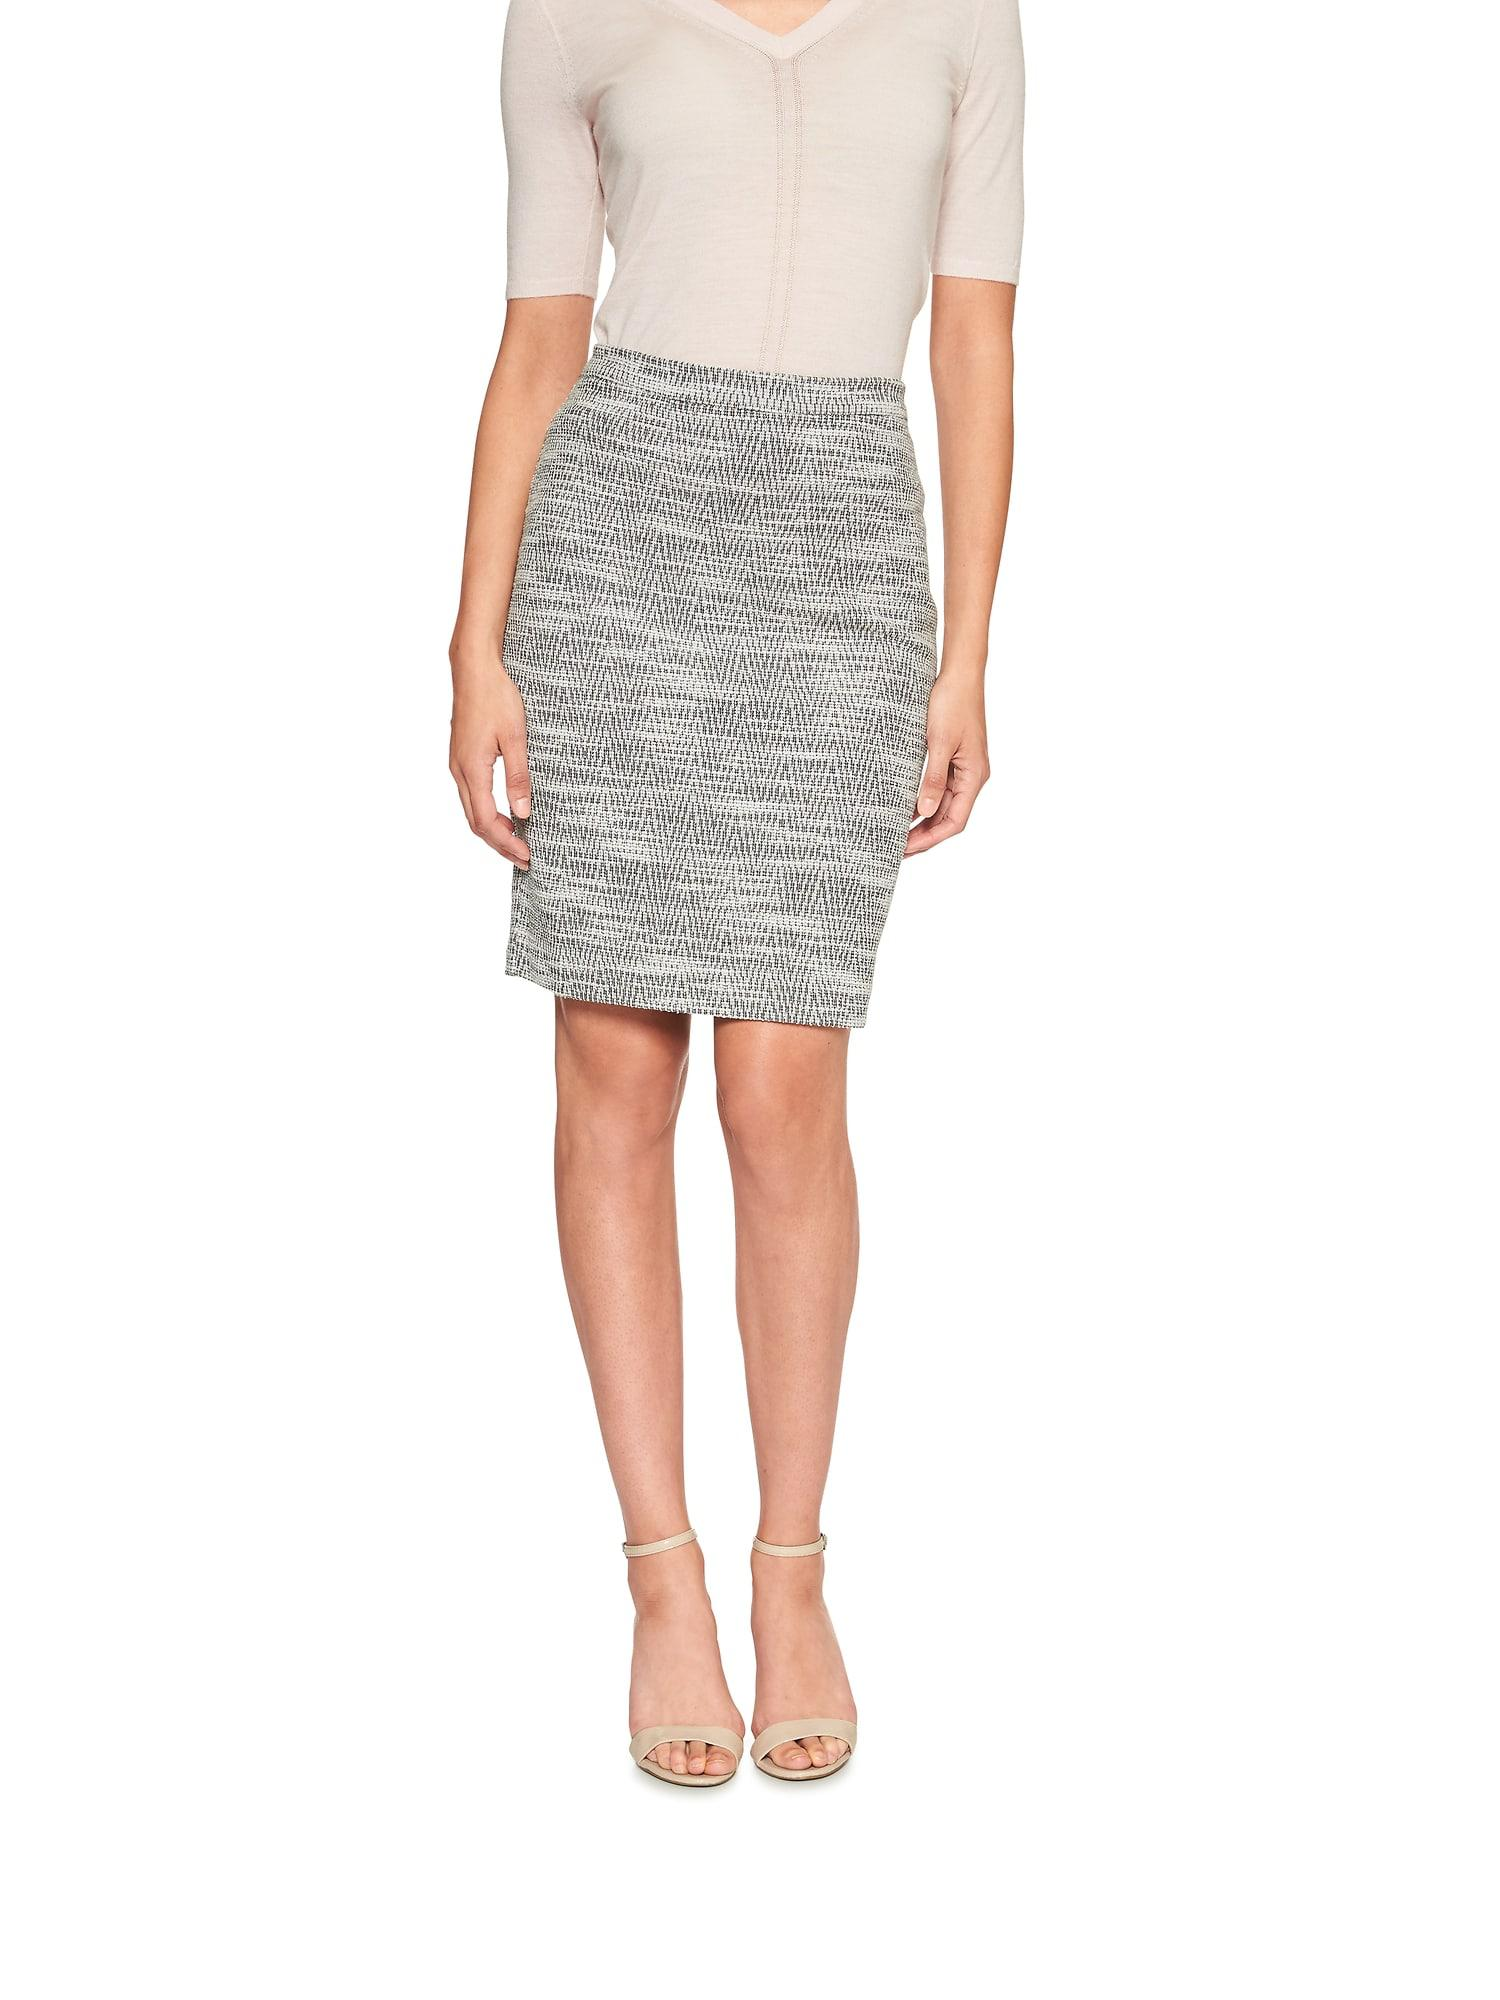 ece468642 Lyst - Banana Republic Factory Houndstooth Jacquard Pencil Skirt in Gray